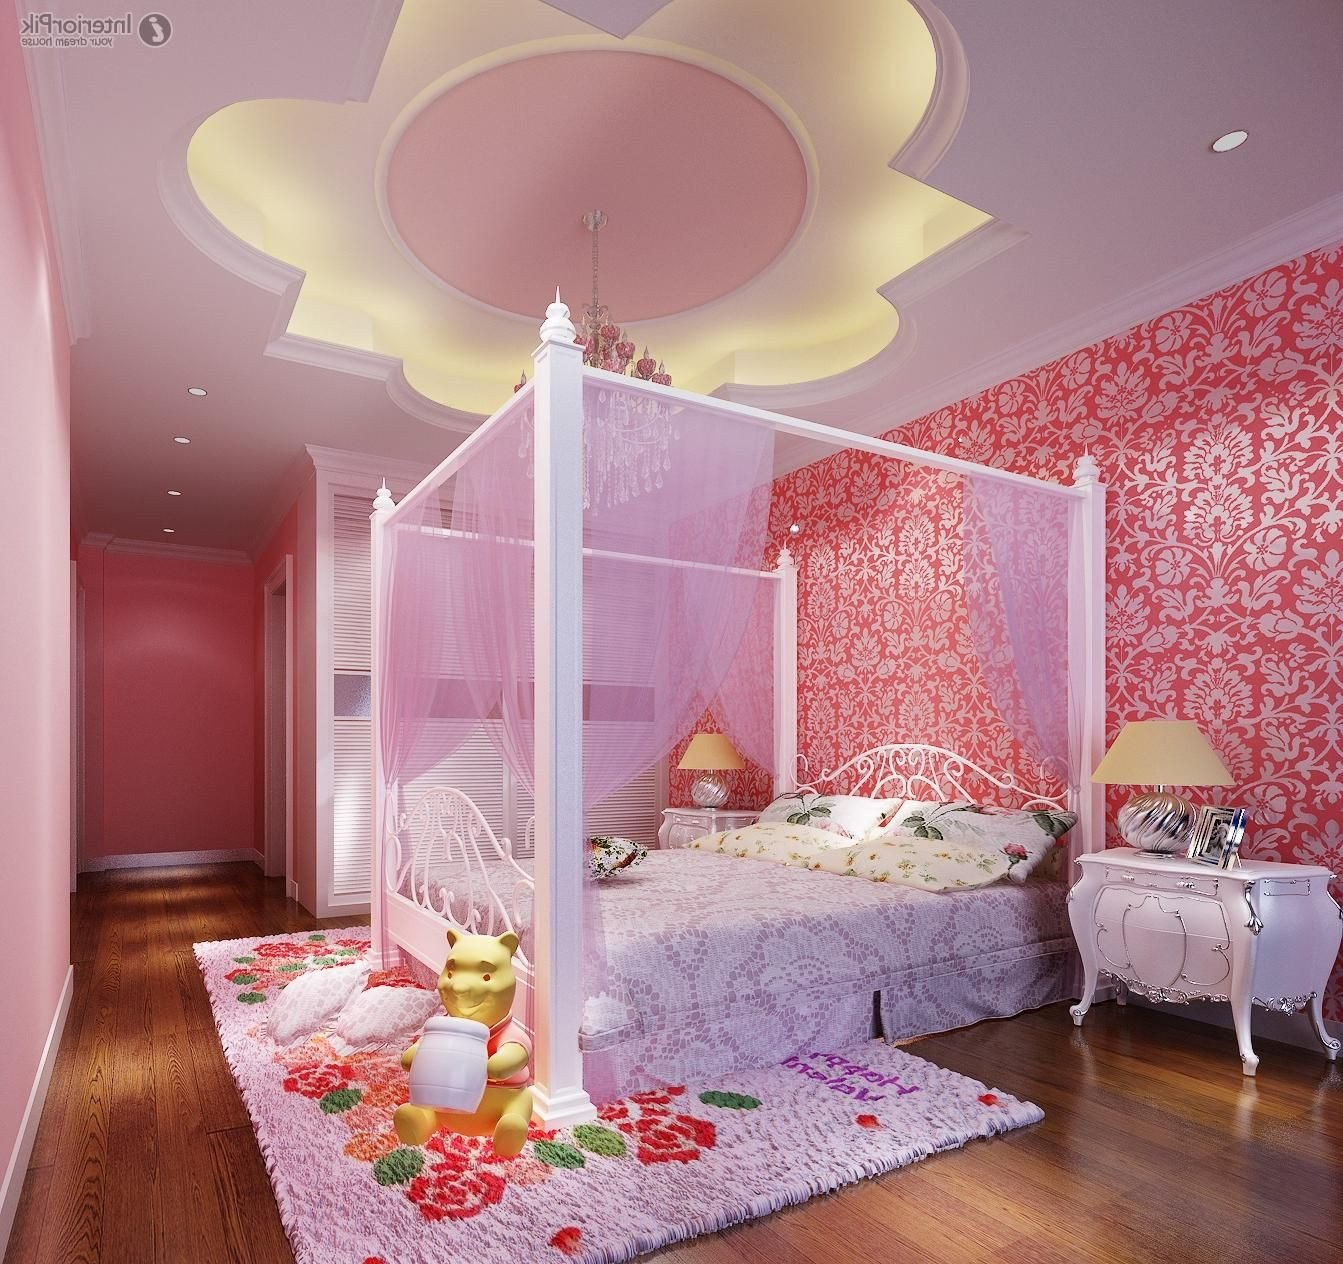 Girls Bedroom Ceiling Light Beautiful Amazing Girls Bedroom Decoration with Led Lighting In Floral